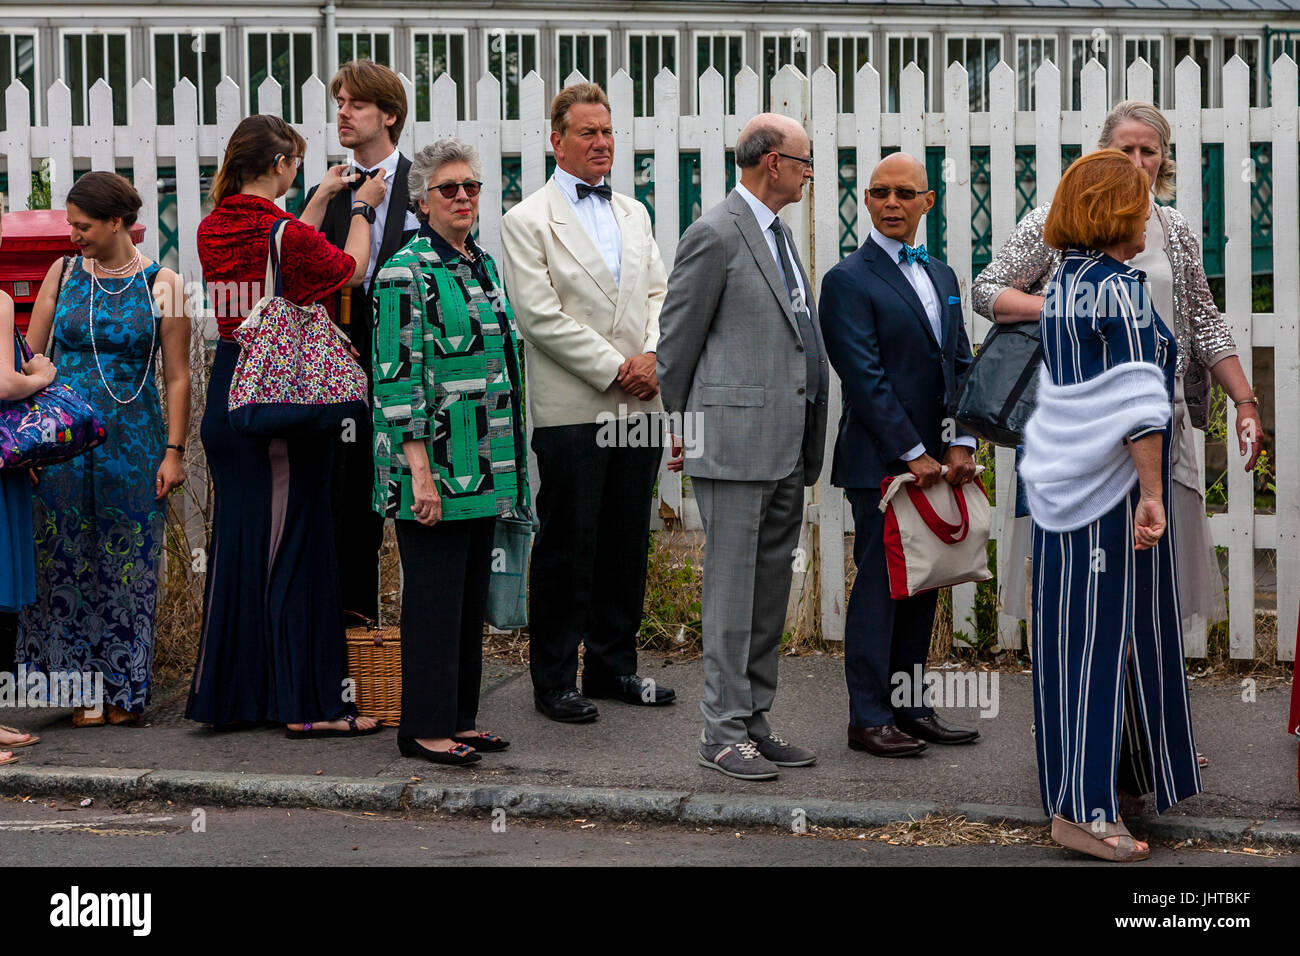 Lewes, UK.  16 July 2017 Television personality and former MP Michael Portillo arrives at Lewes Station enroute - Stock Image